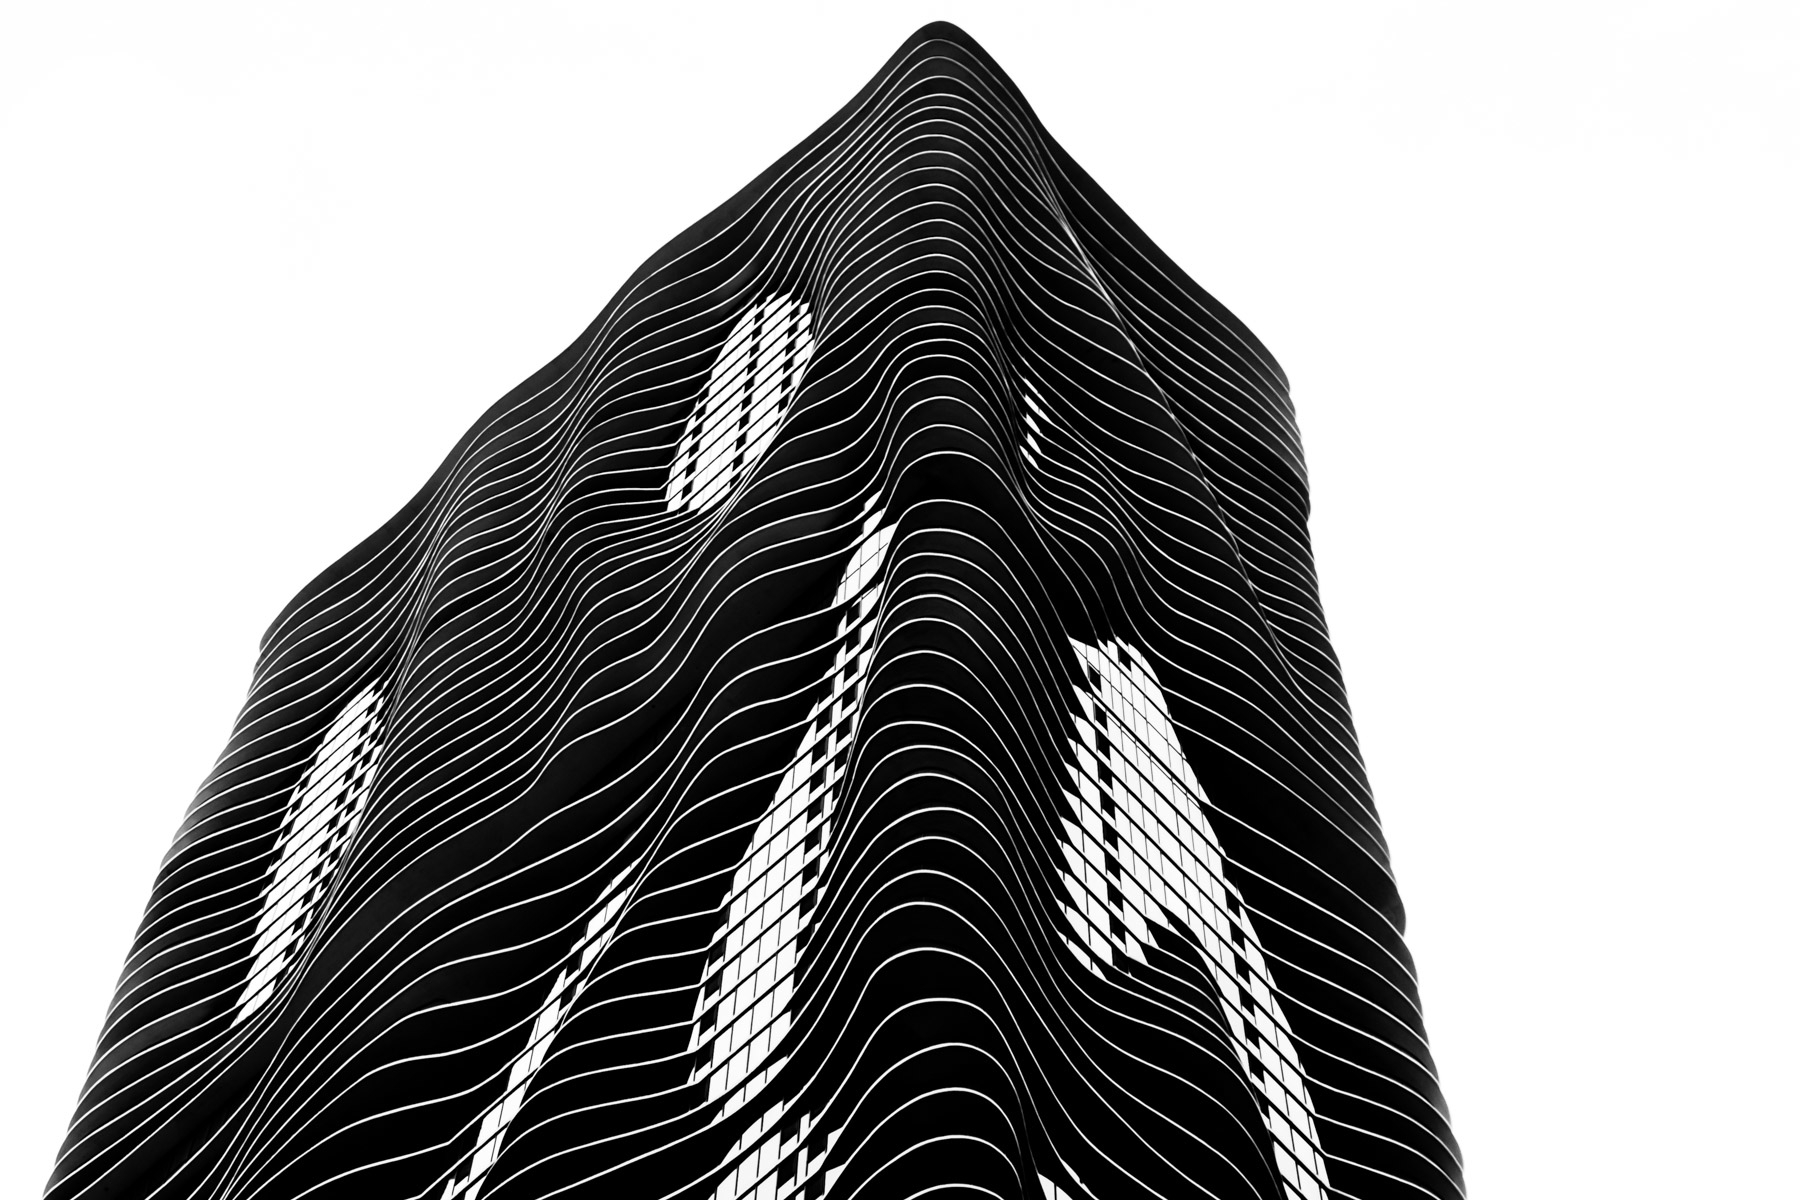 aqua chicago detail.jpg